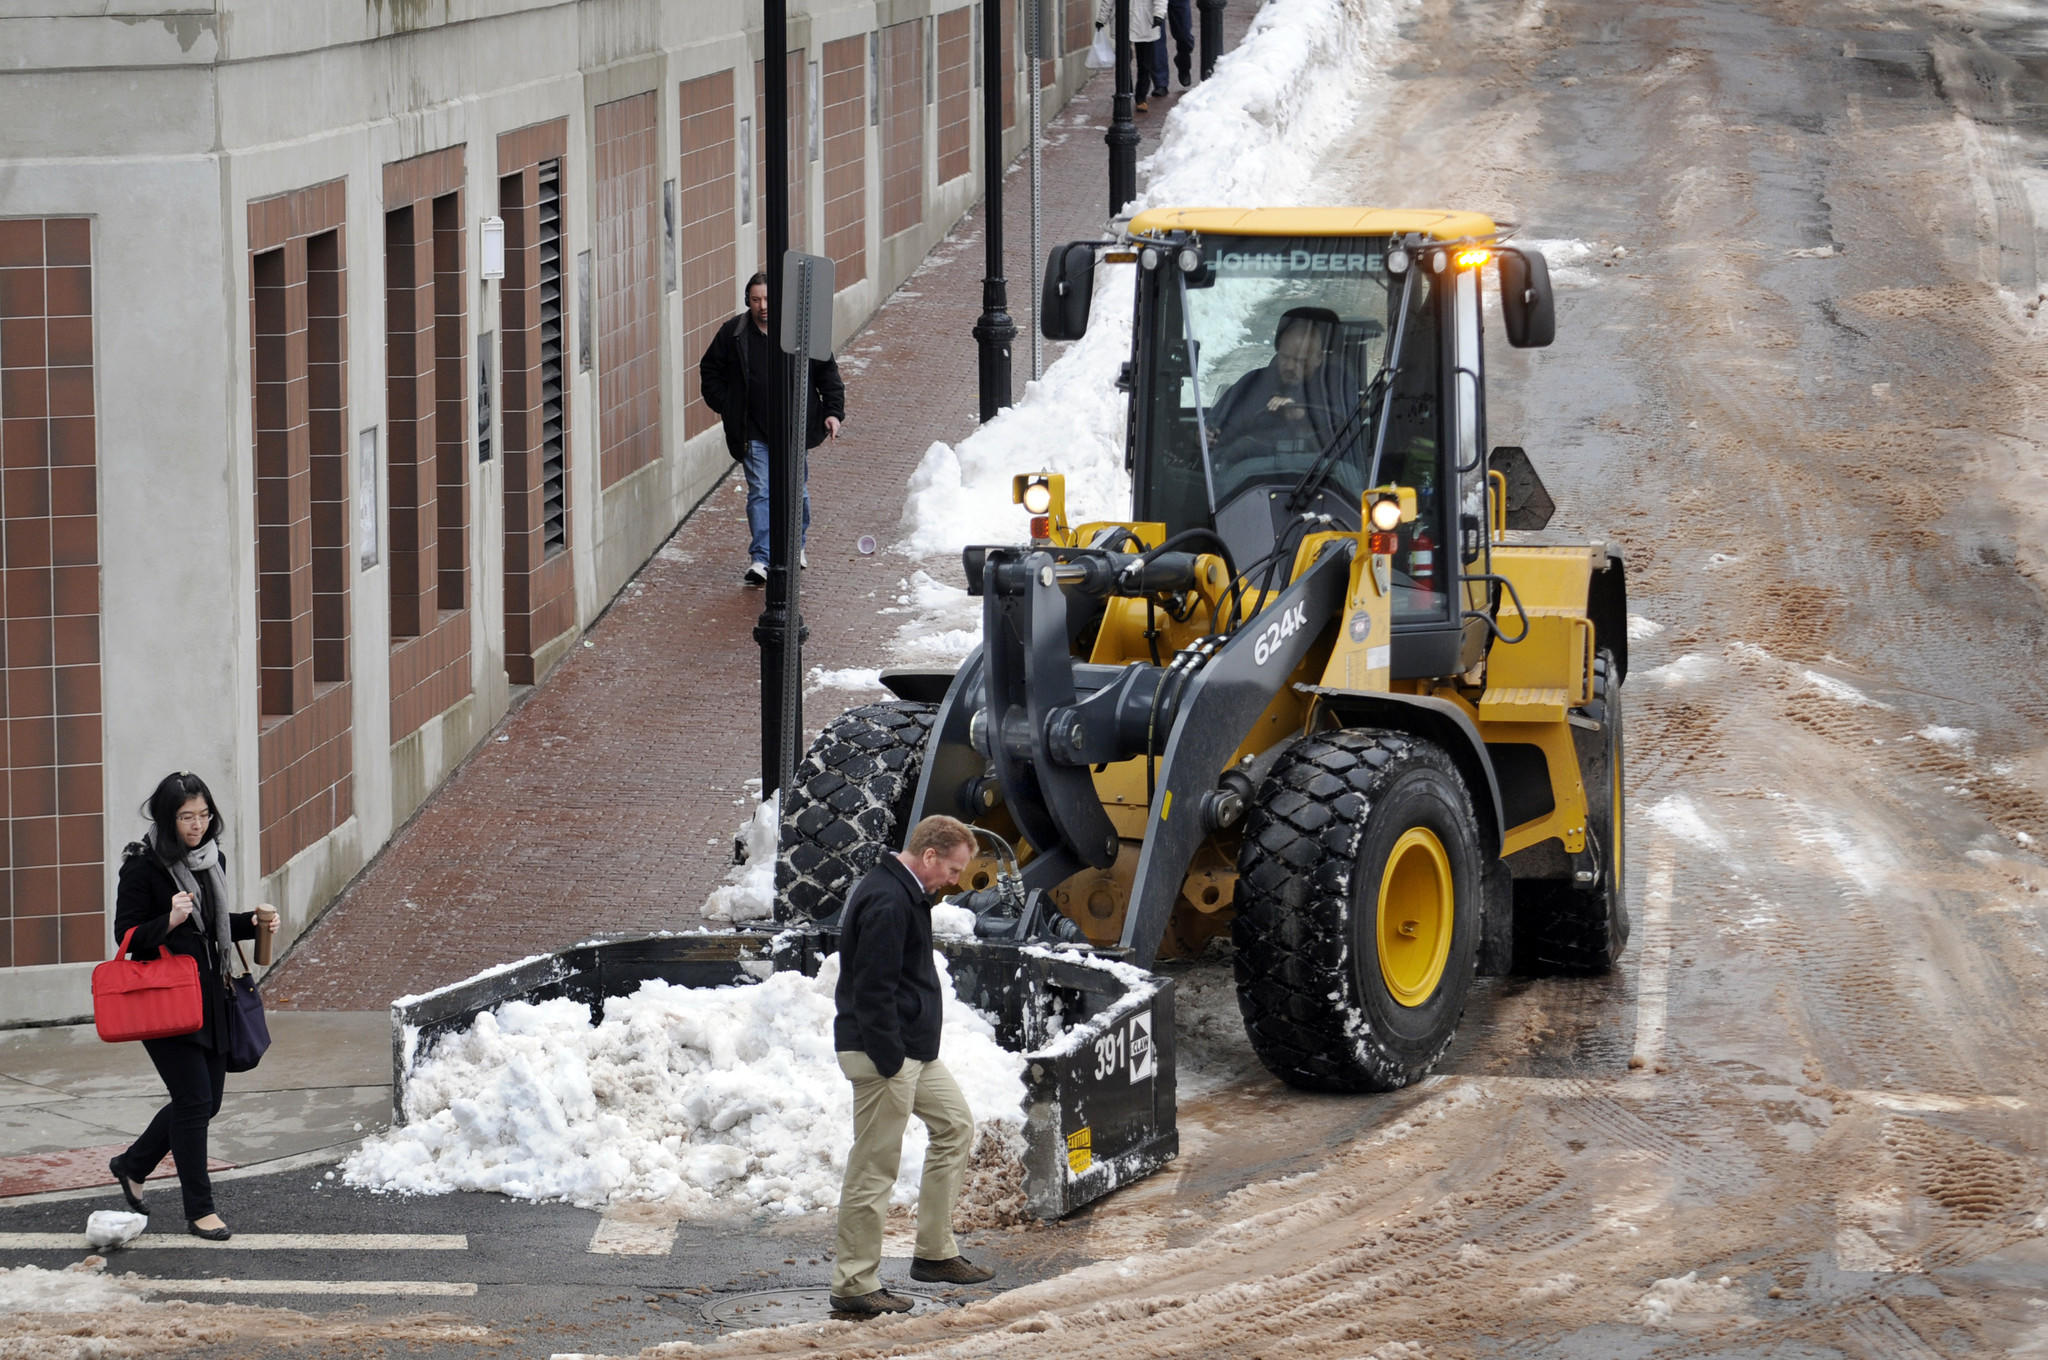 Hartford brought out their heavy equipment to clear the streets downtown Thursday after the latest snowfall that left many streets very narrow due to the mountains of snow.